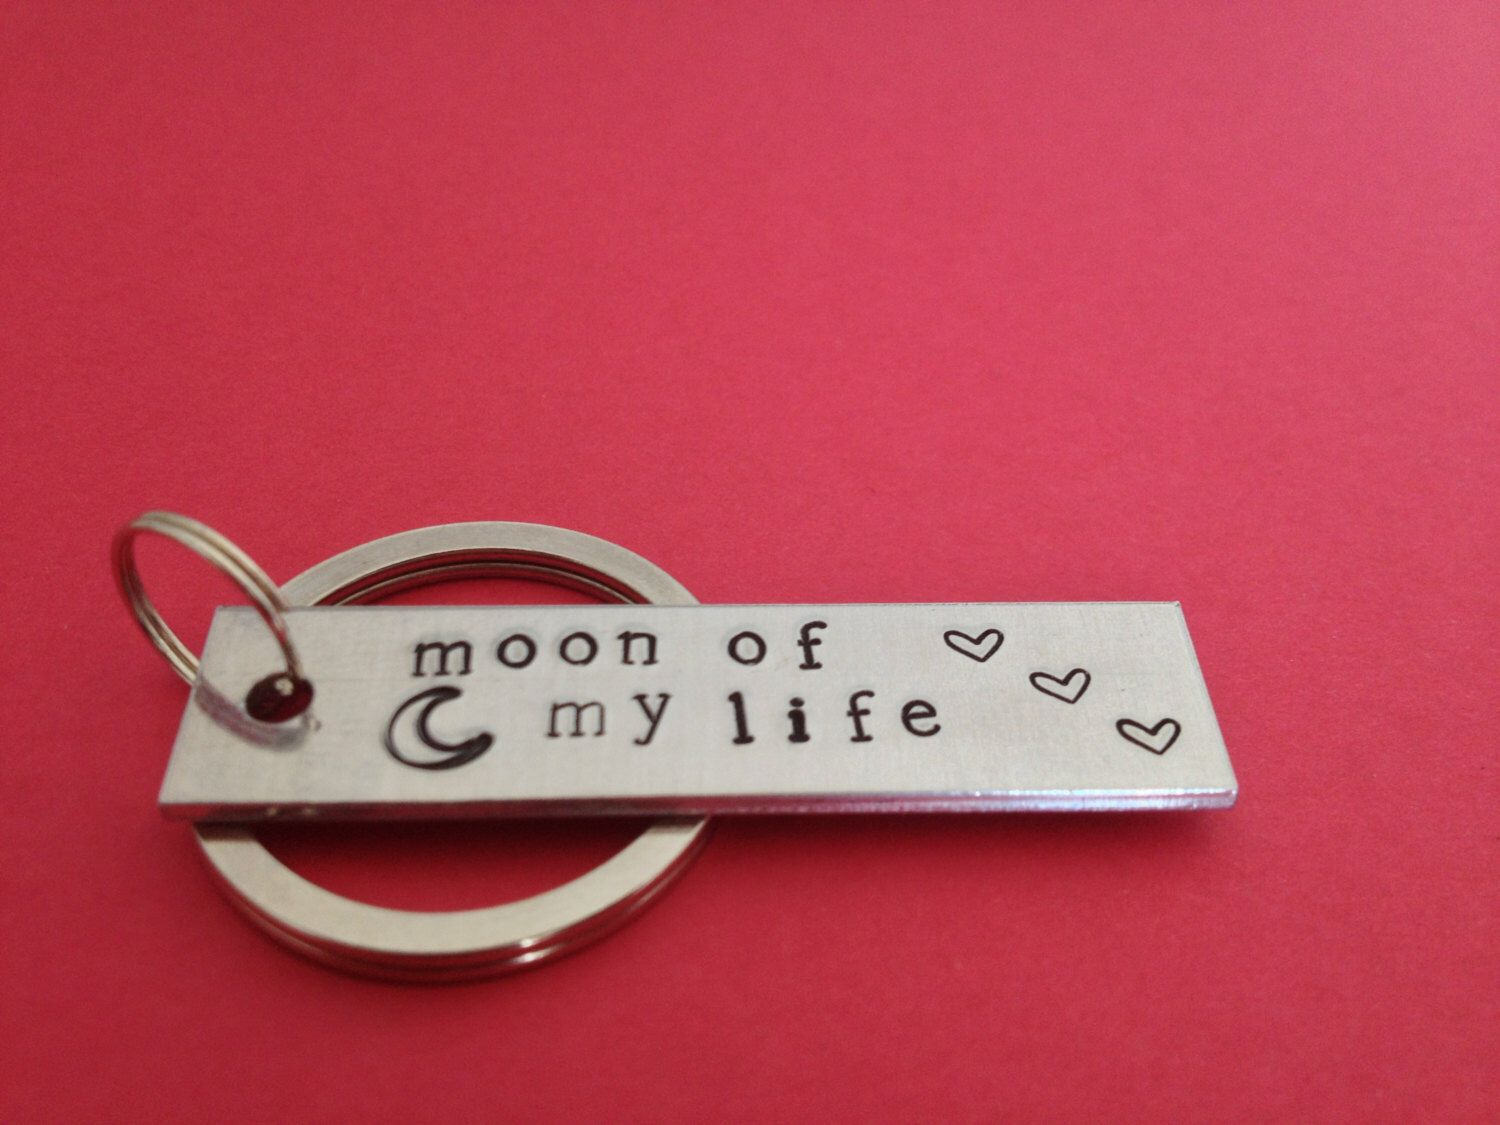 Moon Of My Life Keychain Game Of Thrones Inspired Hand Stamped Aluminum Key Chain par FamilyHouseStampin sur Etsy https://www.etsy.com/fr/listing/130131699/moon-of-my-life-keychain-game-of-thrones